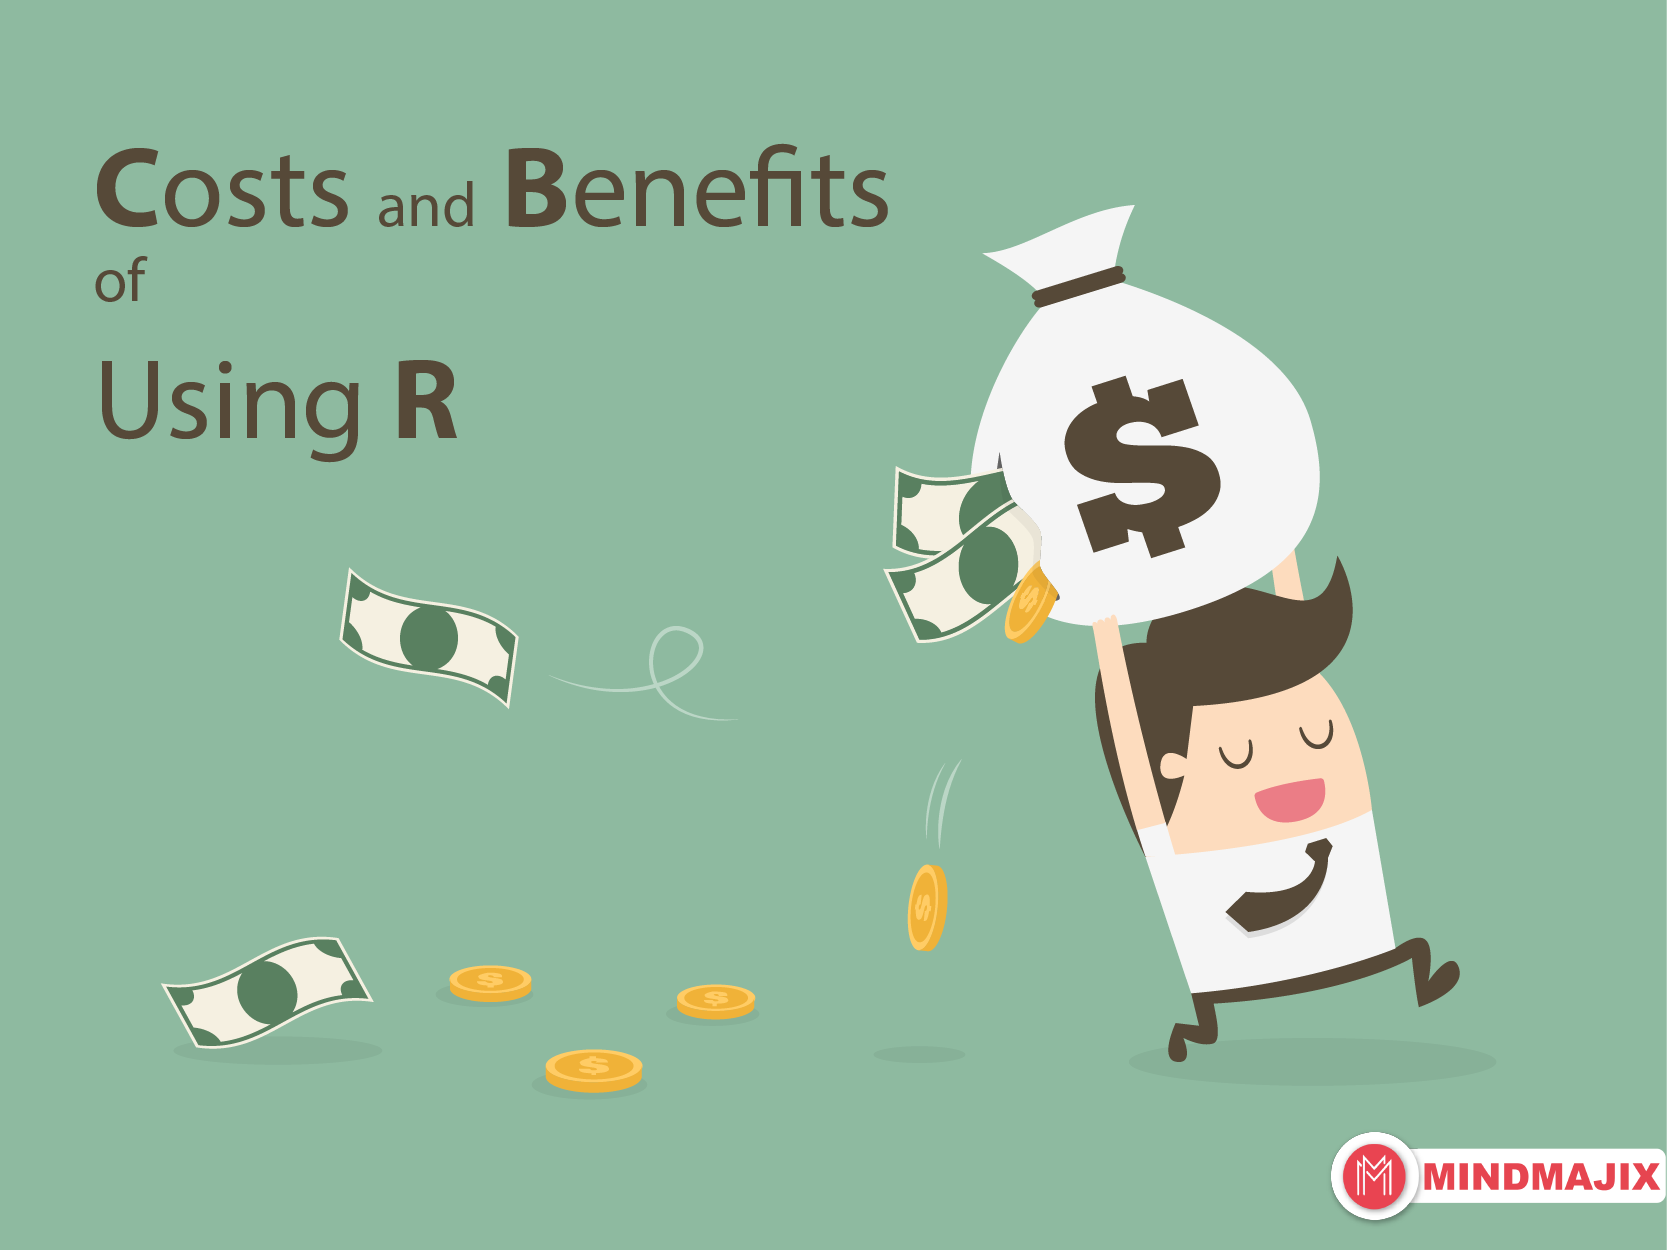 Costs and Benefits of Using R